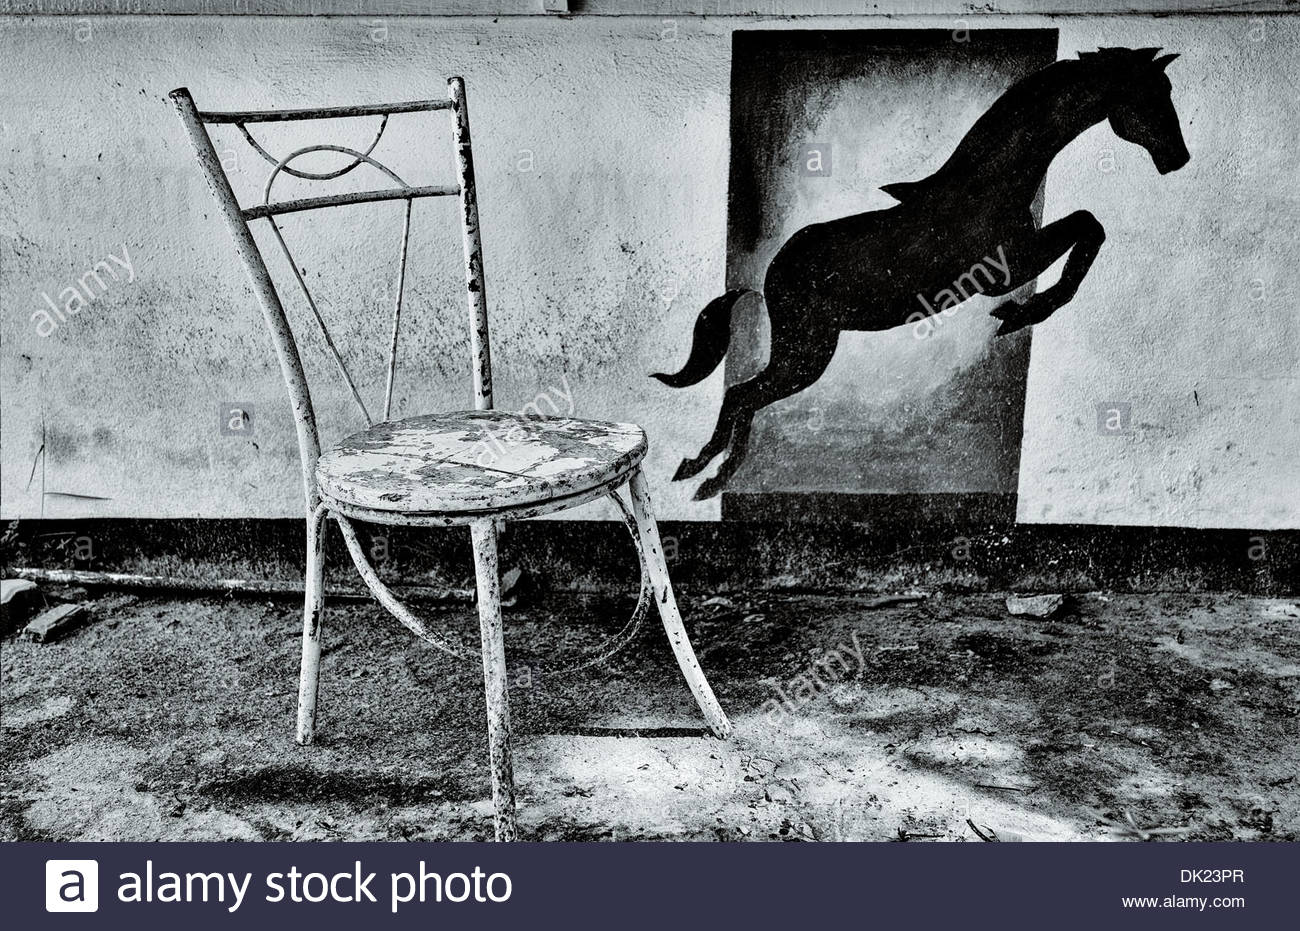 A painted horse appears to be leaping off an old metal chair in front of a derelict restaurant on the shore of Sangthain Beach. - Stock Image